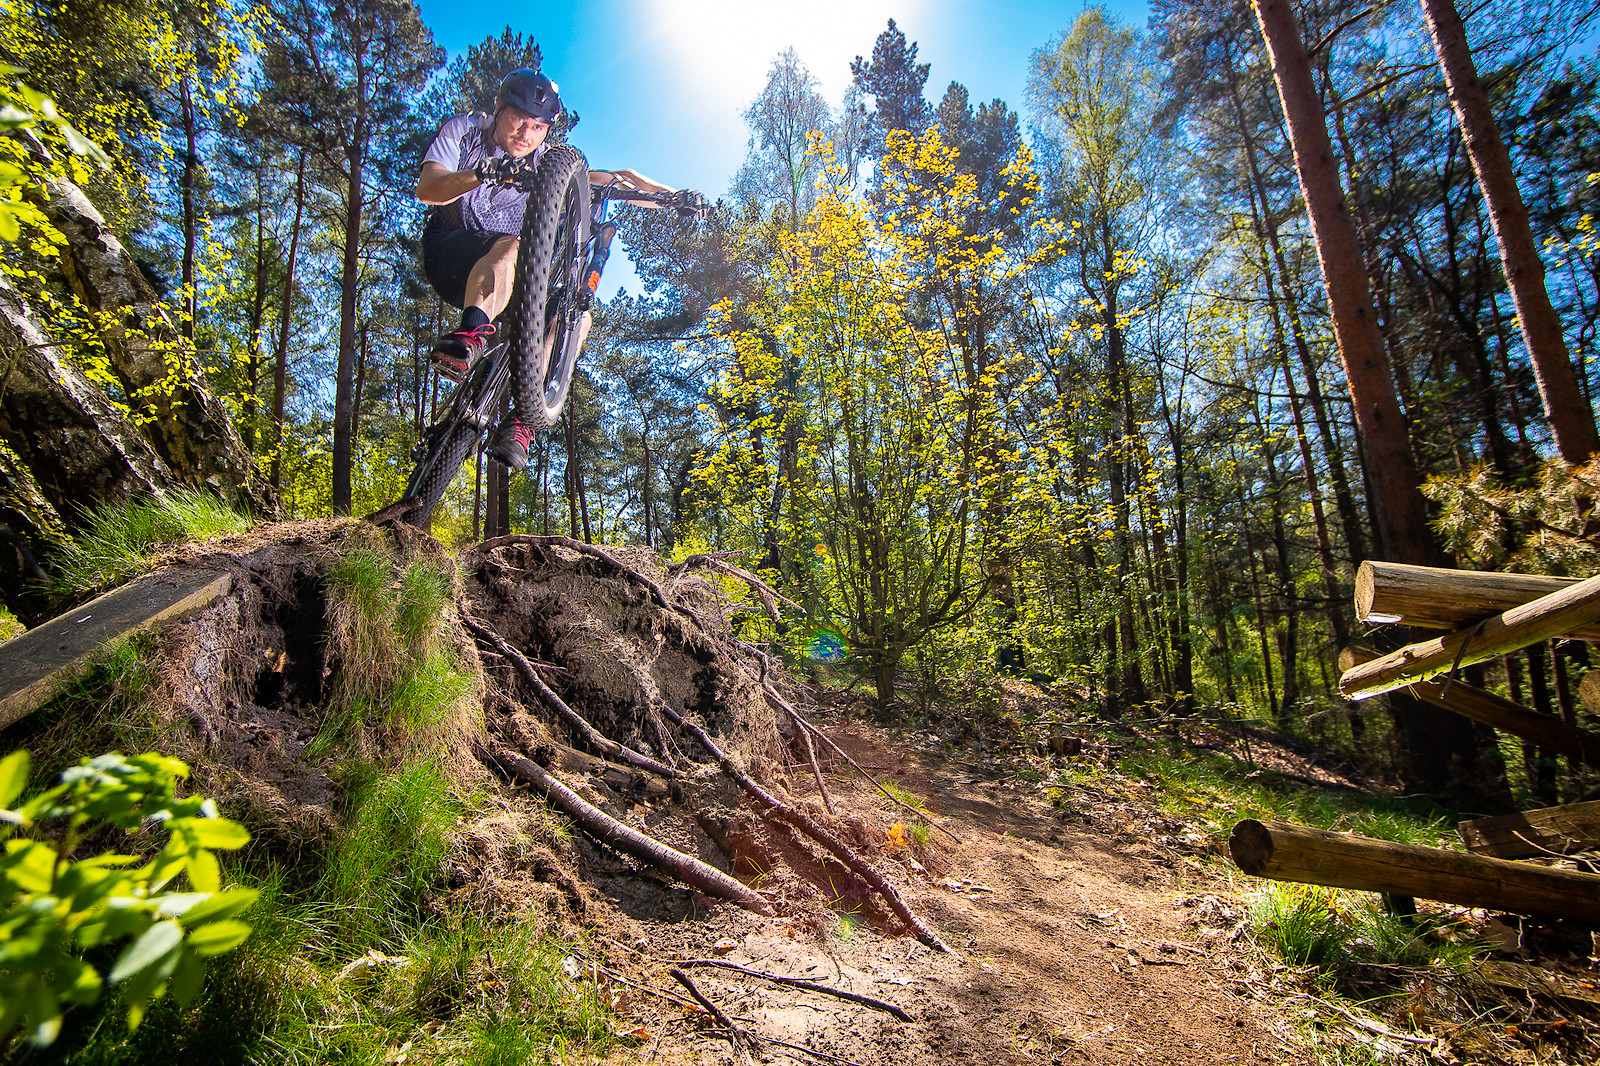 Stump Kicker - Robert_Loughlin - Mountain Biking Pictures - Vital MTB